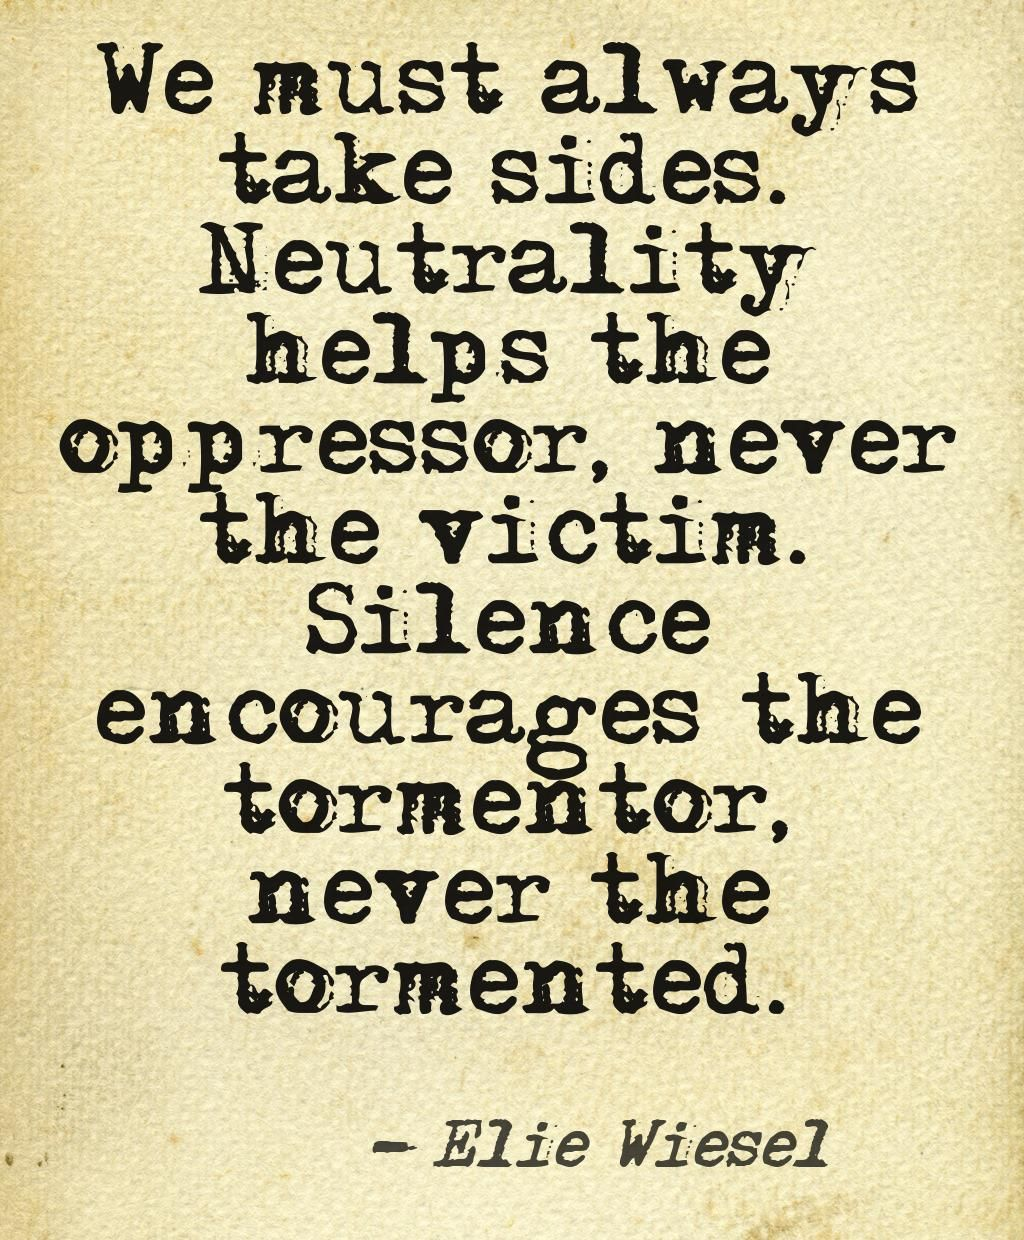 Holocaust Survivor Quotes Elie Wiesel  Revolutionary  Pinterest  Elie Wiesel And Perspective